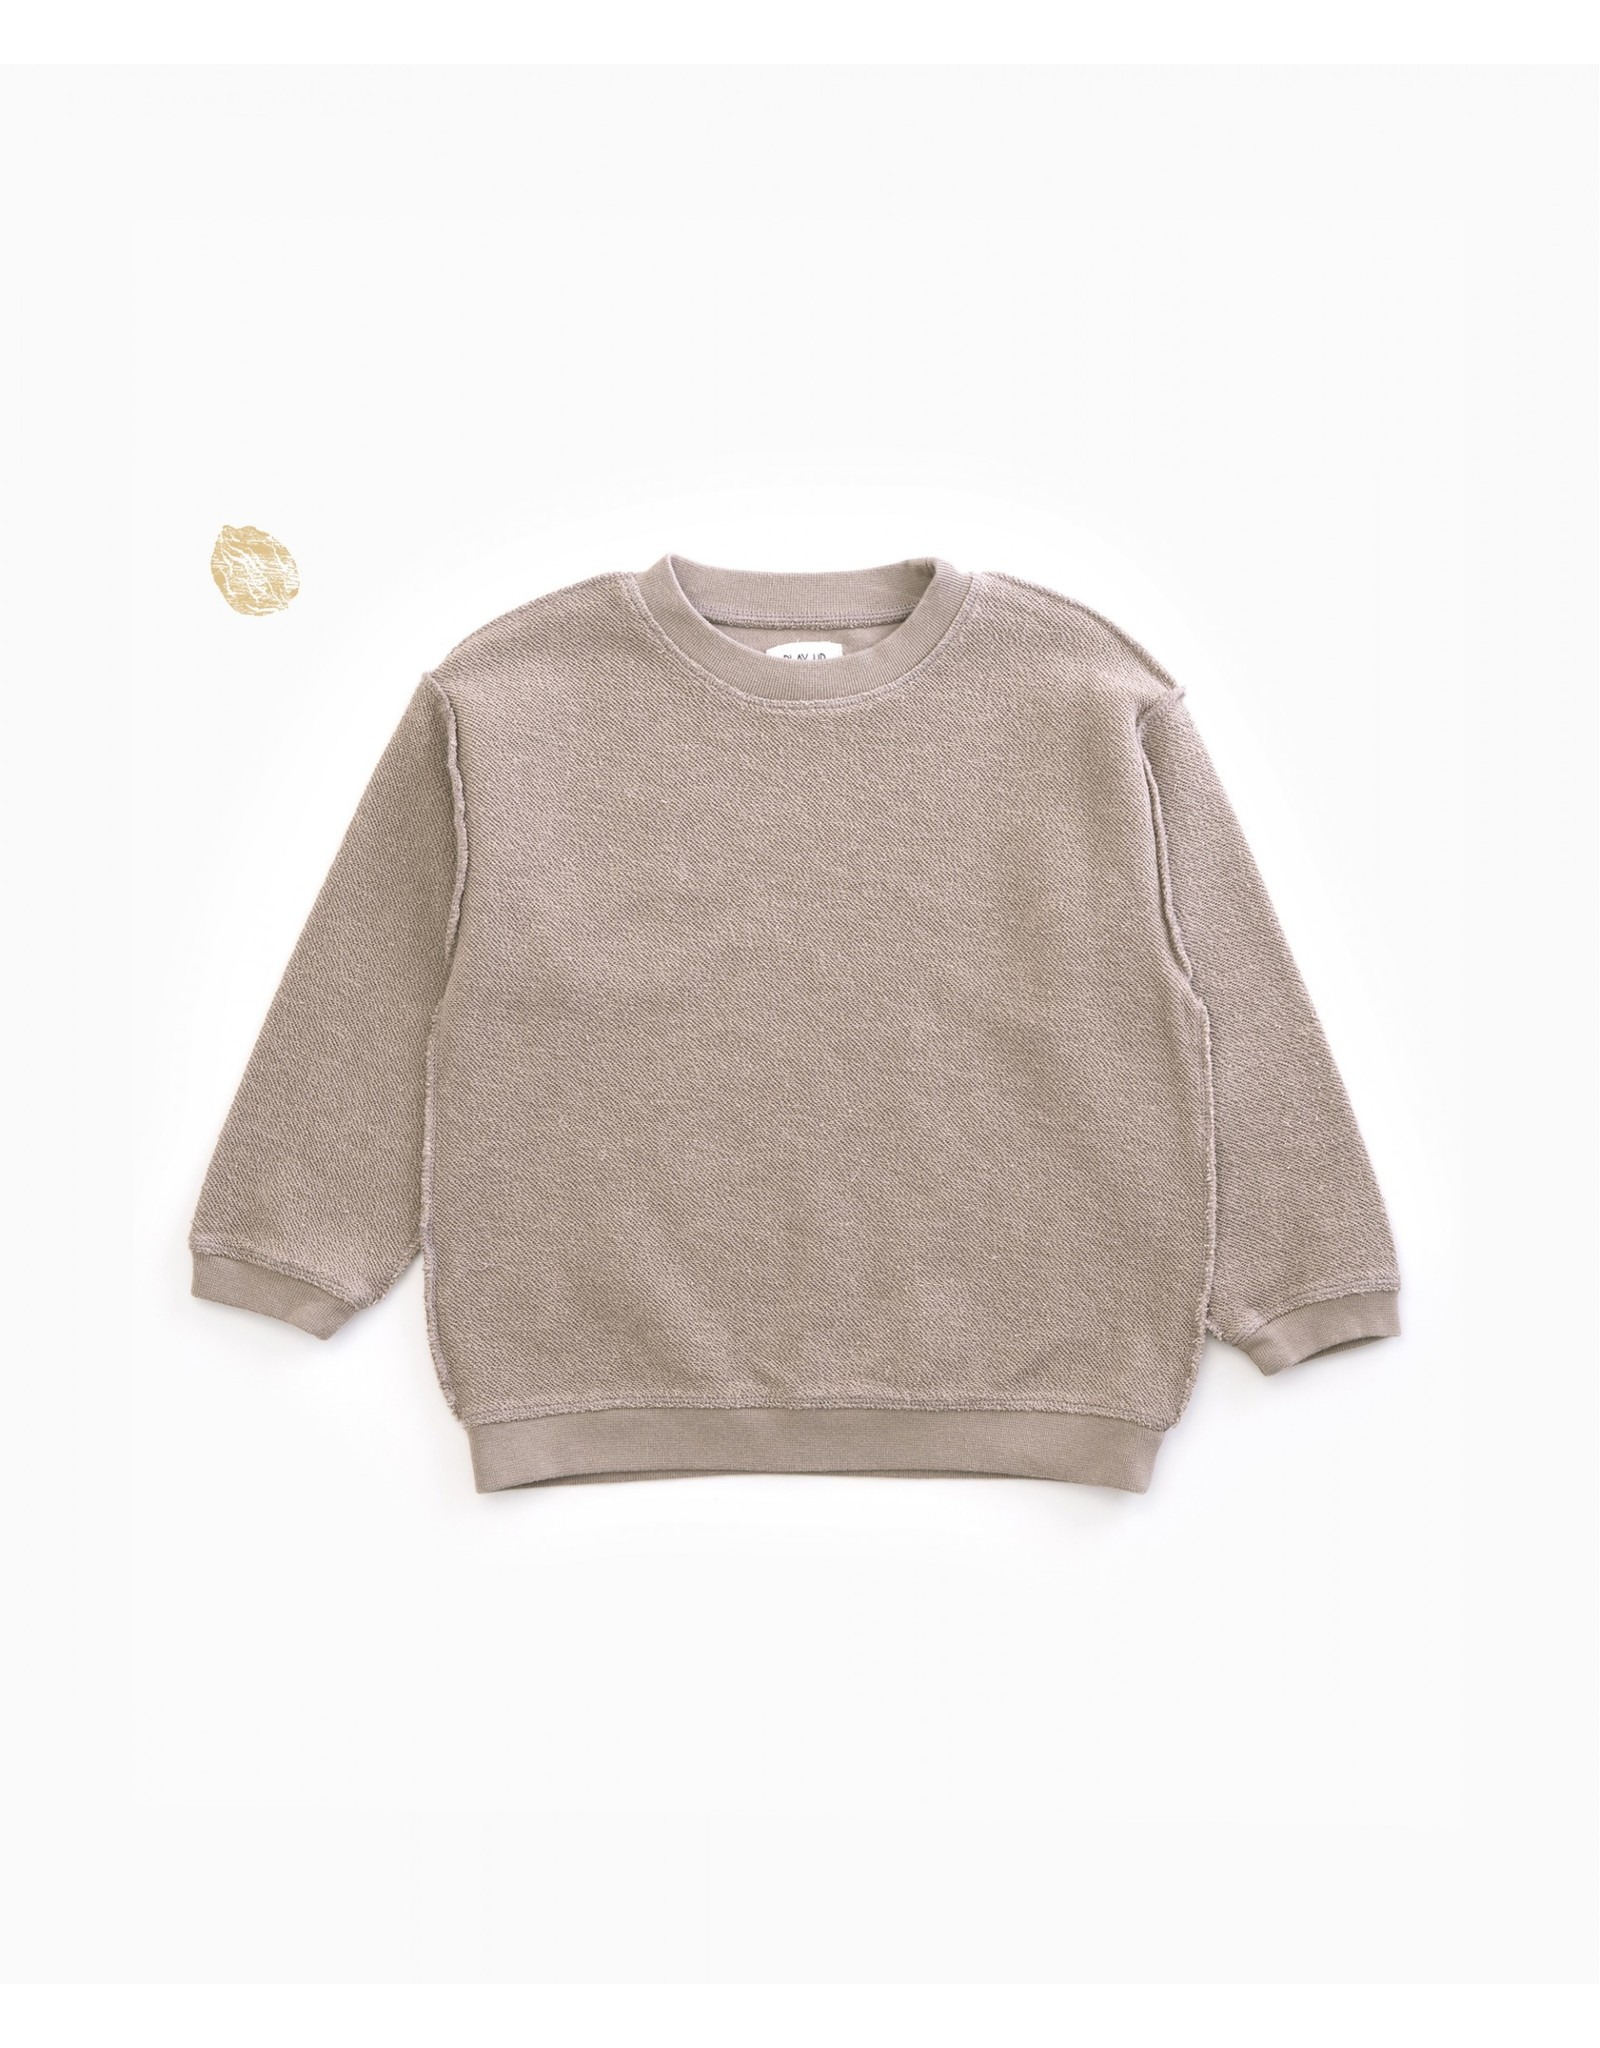 Play Up Play Up sweater beige